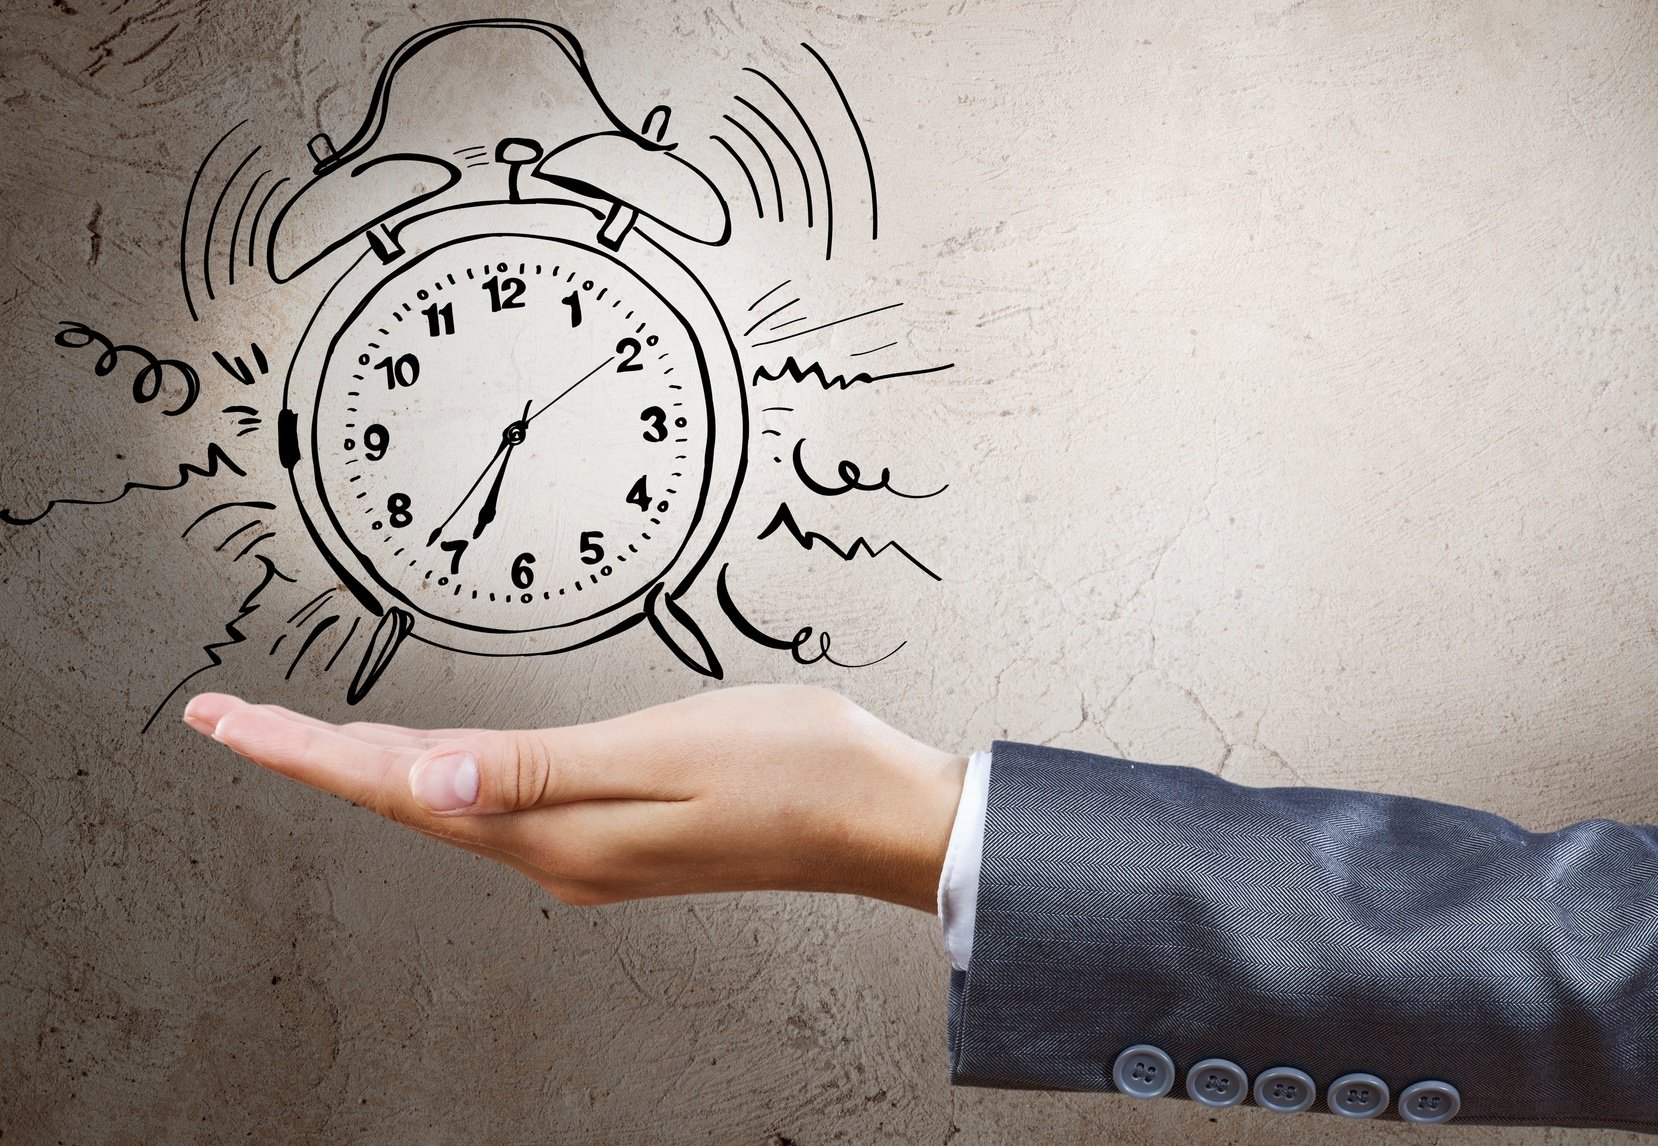 6 Ways to Create Urgency in the Sales Cycle